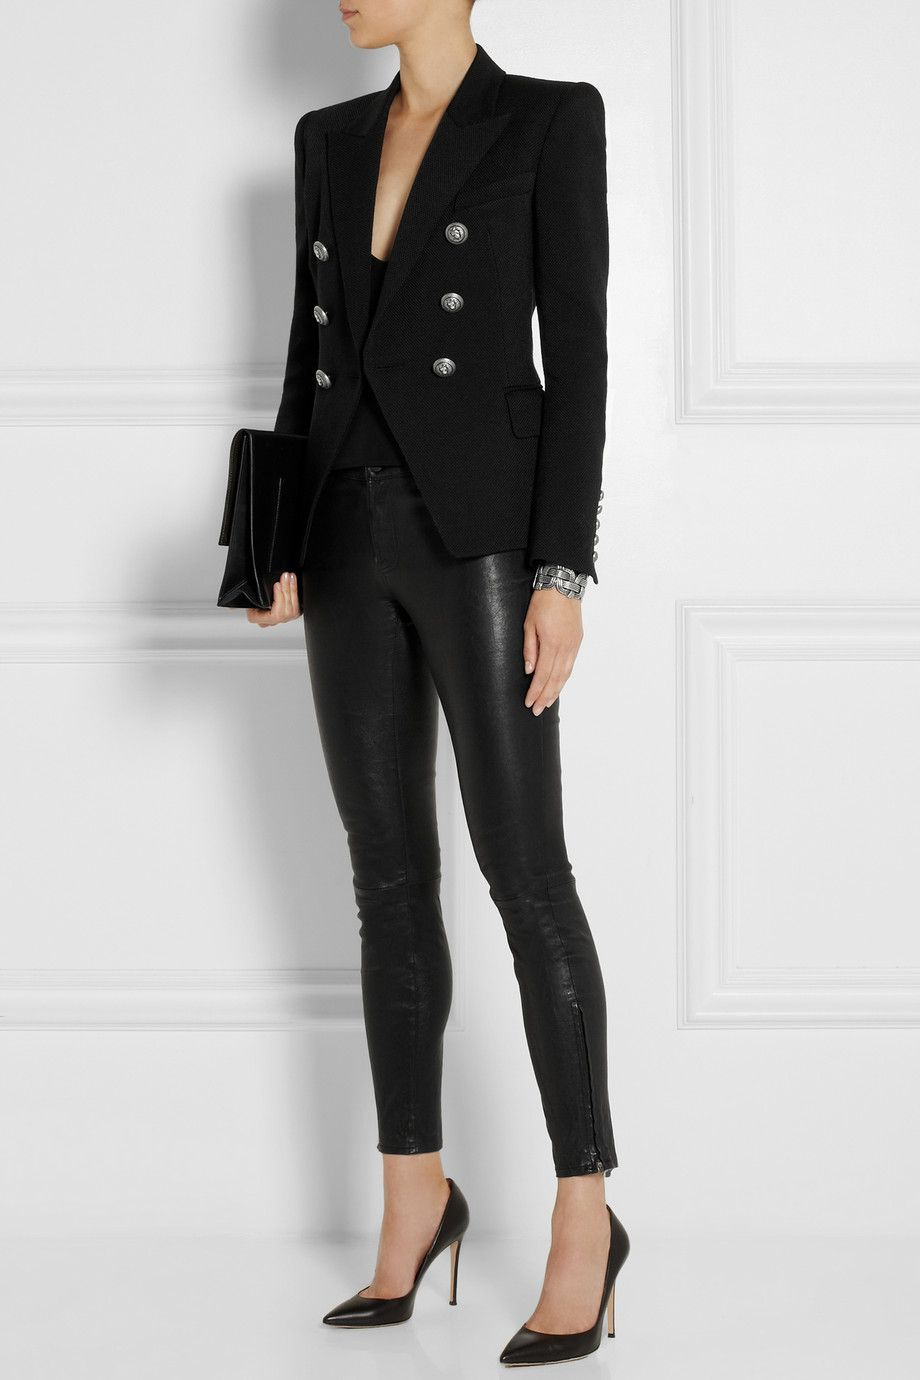 Balmain double breasted piqu blazer net a porter com for Net a porter